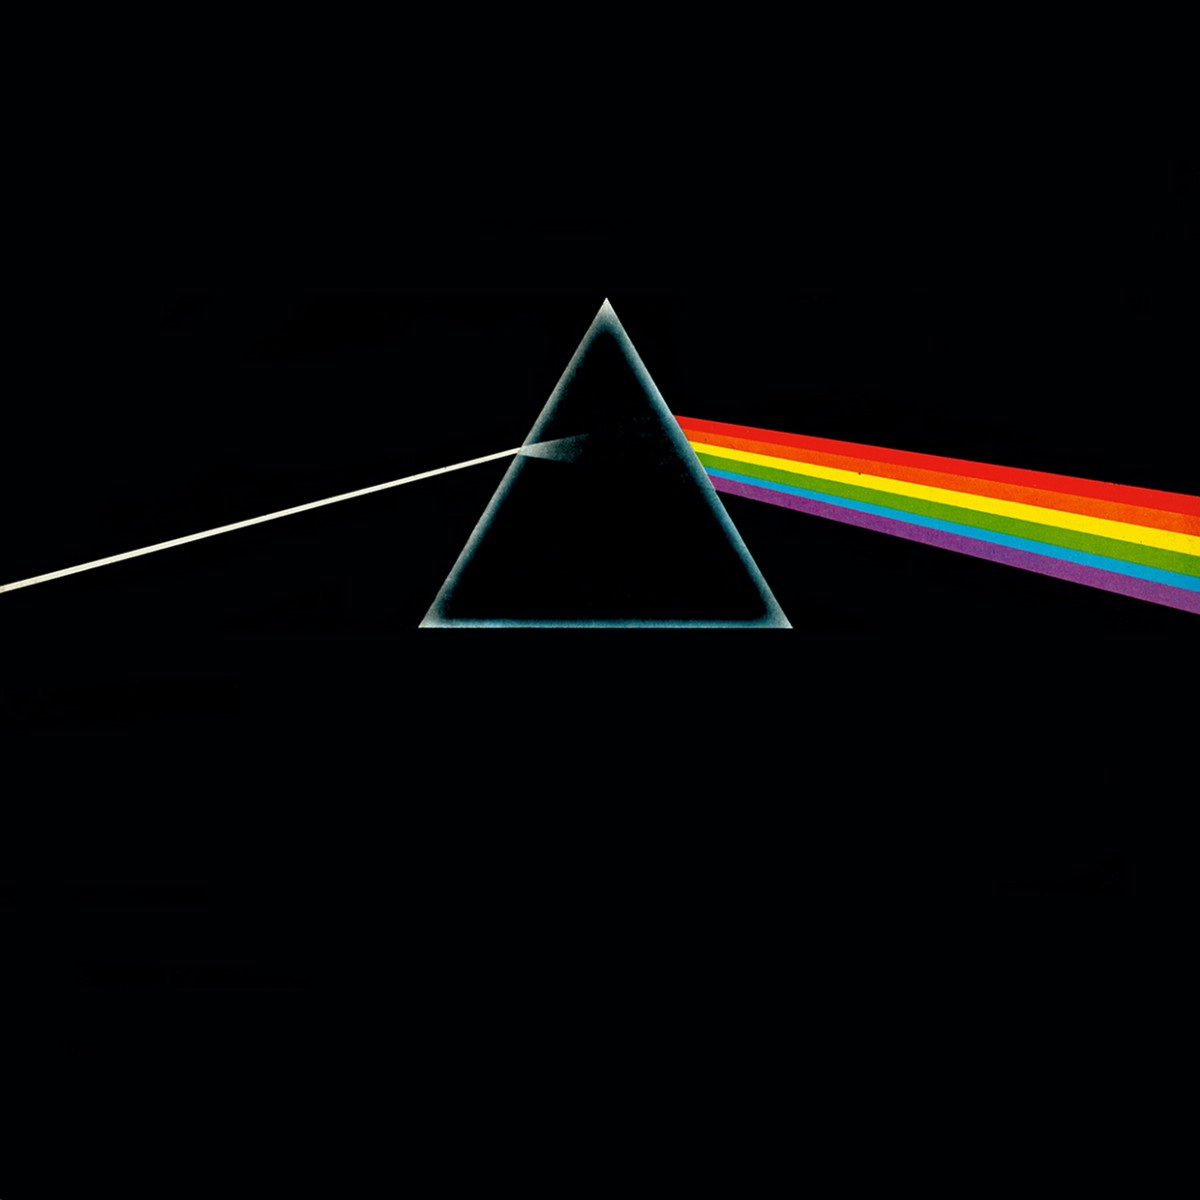 """The Dark Side of the Moon"""": How an Album Cover Became an Icon 